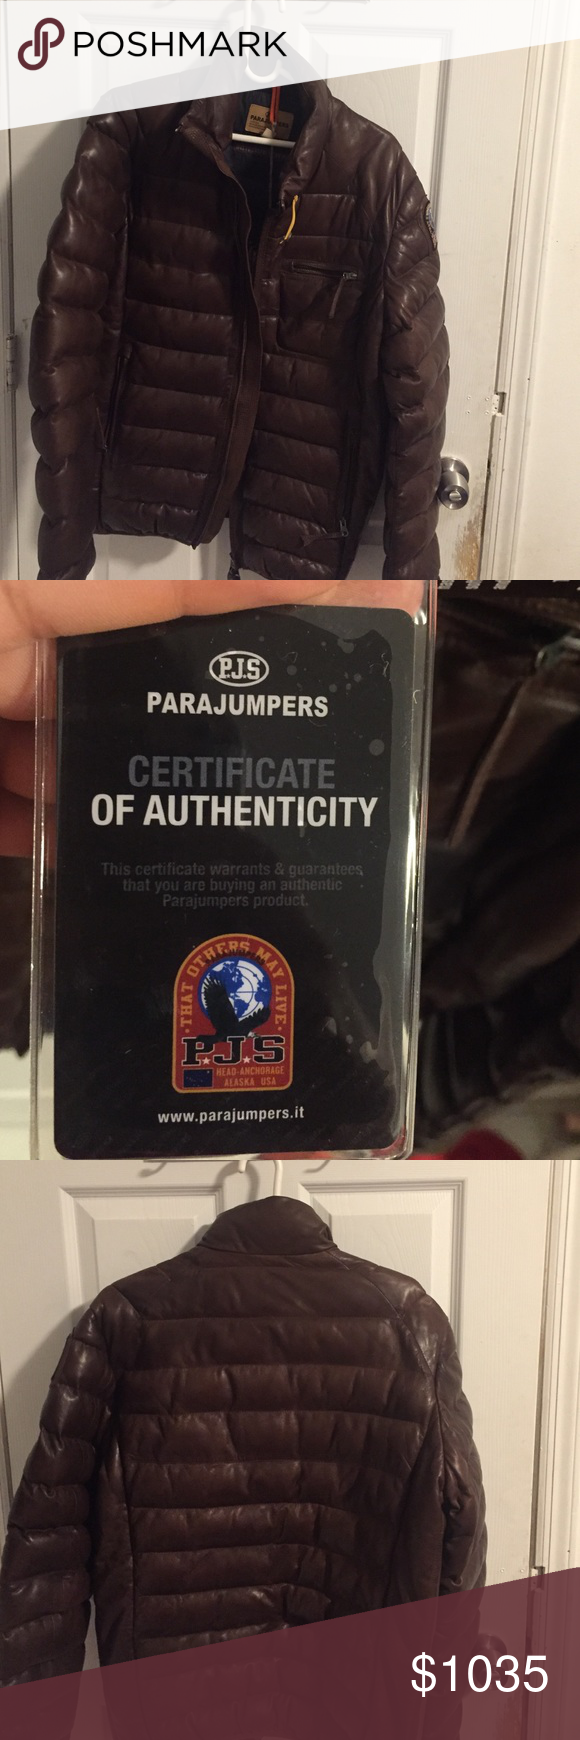 parajumpers authenticity